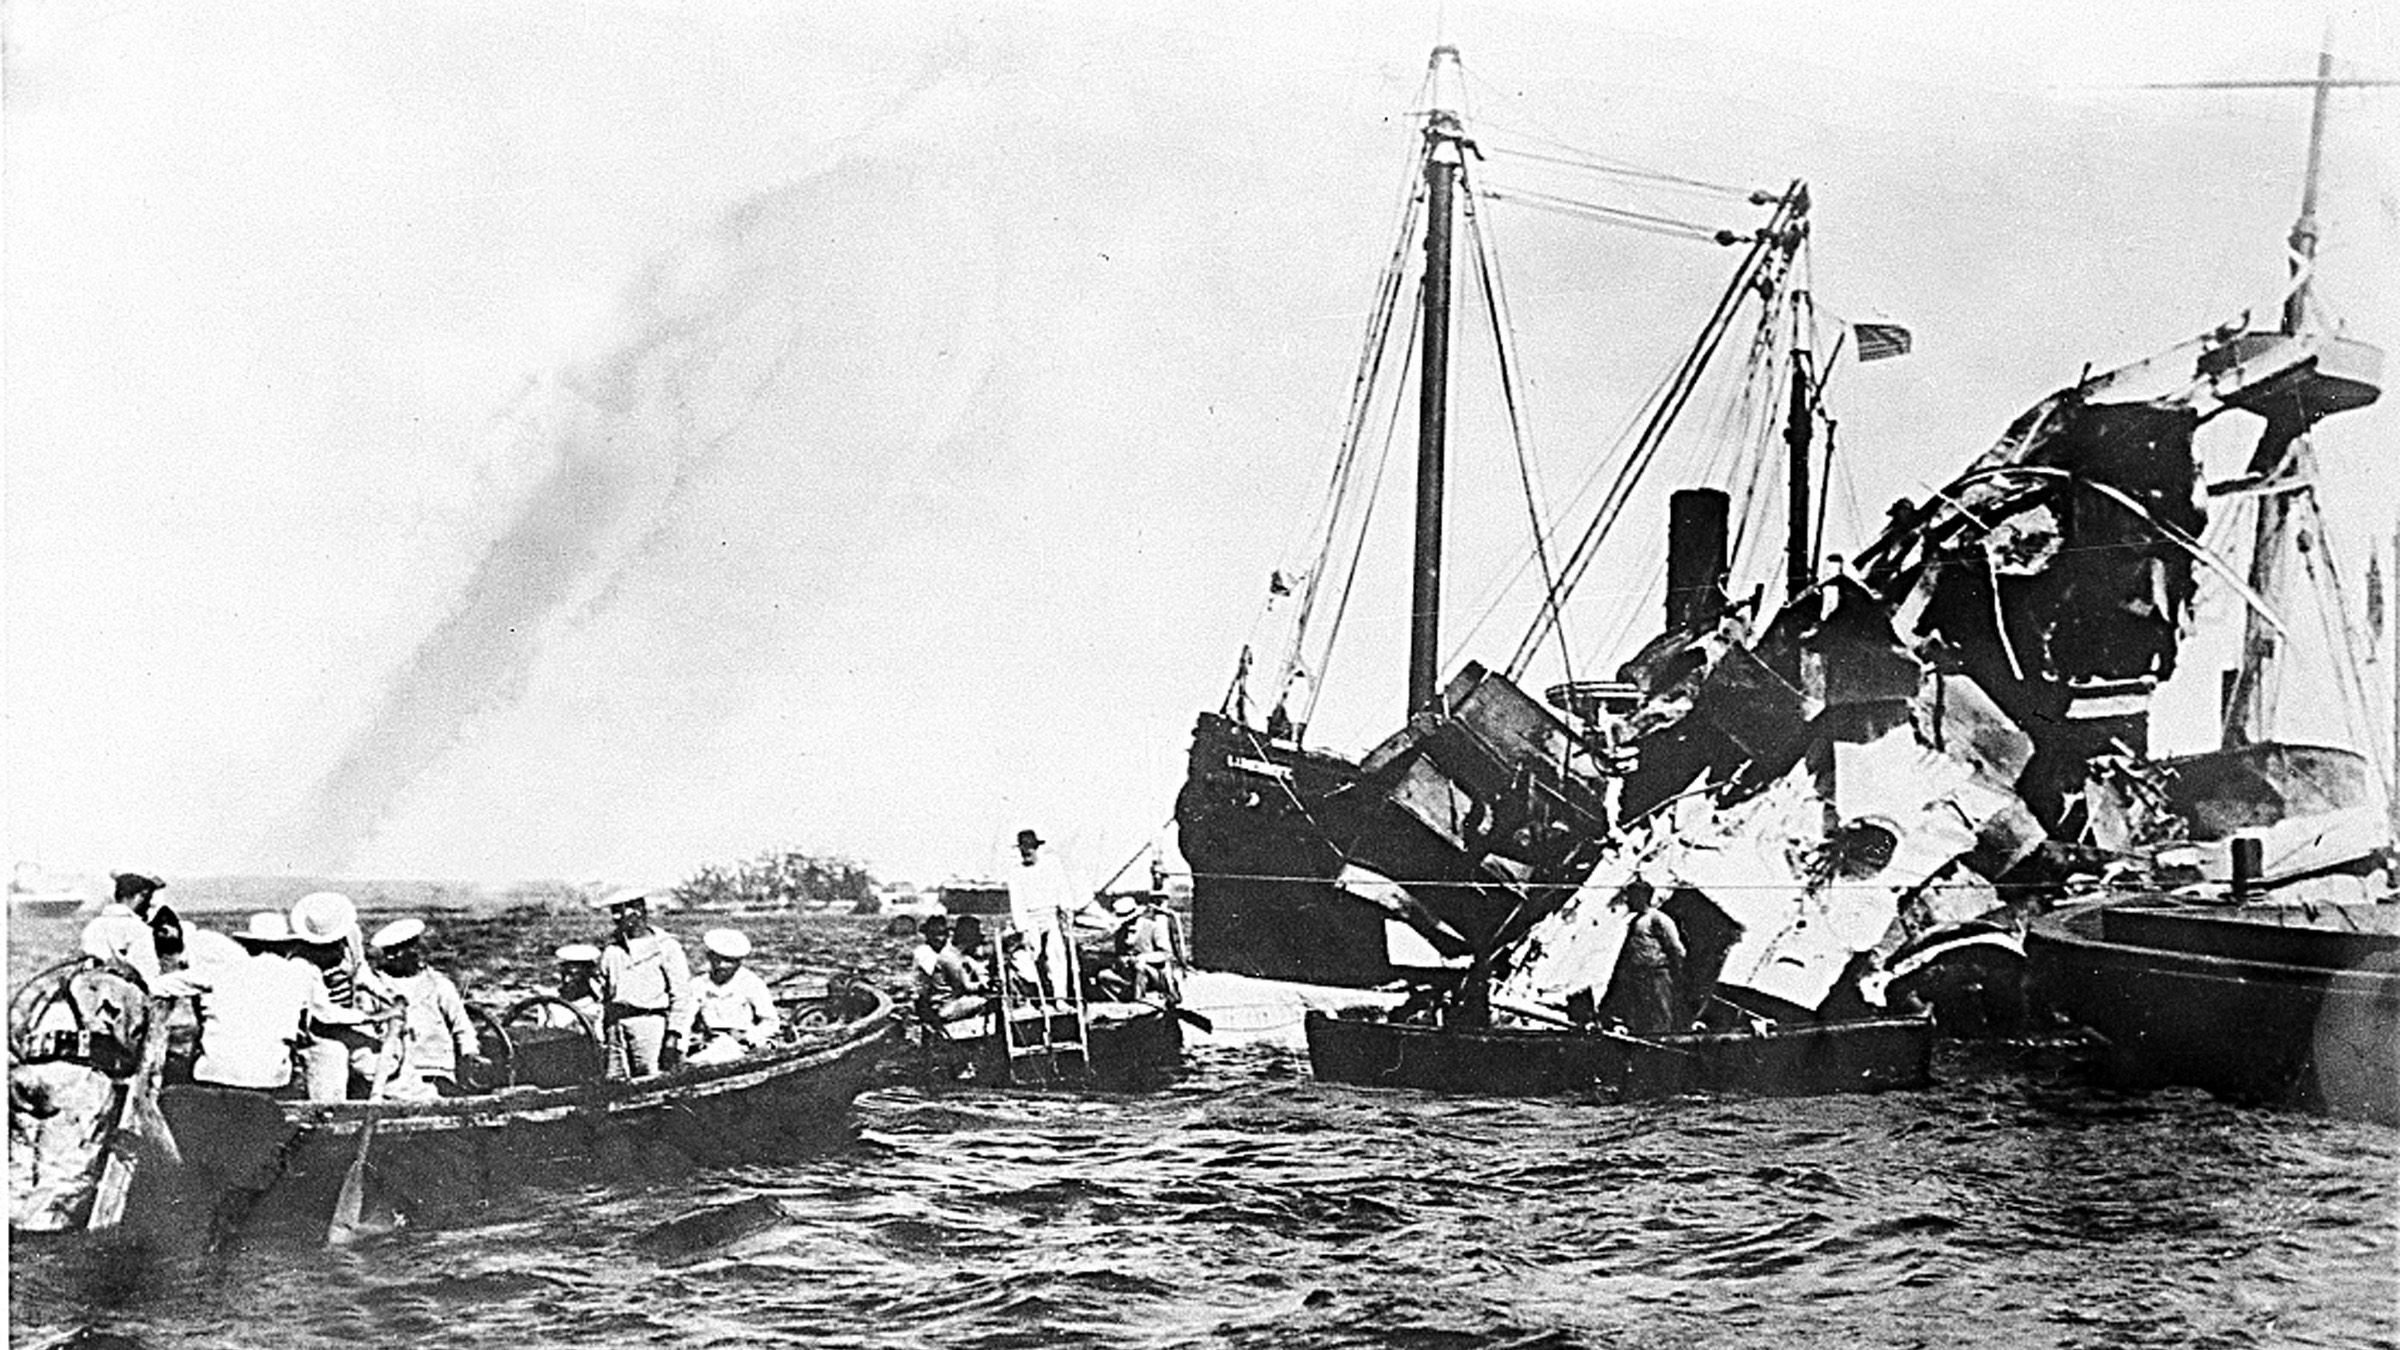 Lifeboats rescue surviving crewmen of the wrecked USS Maine after an underground explosion destroyed the battleship on the night of Feb. 15 as it was anchored in the Havana harbor, Cuba, in 1898. About 260 U.S. Naval personnel were killed in the explosion. The sinking of the U.S. warship was a catalyst for the outbreak of the Spanish-American War and the U.S. officially waged war on April 25.